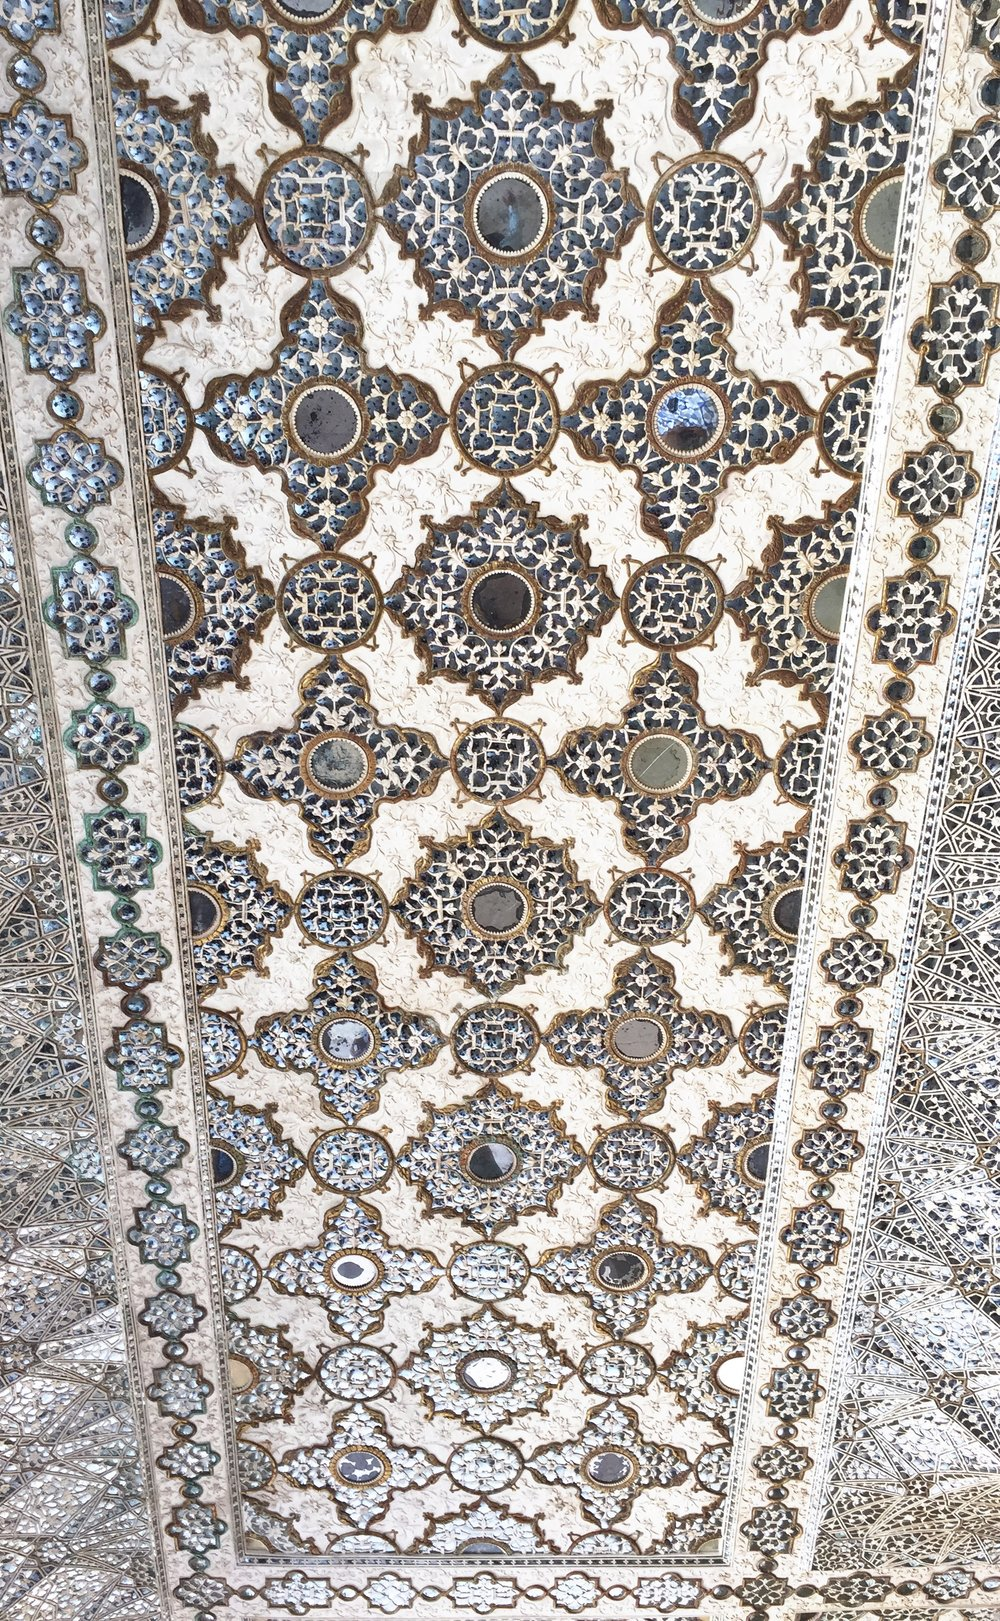 Sheesh Mahal - Mirror Palace, Jaipur, India